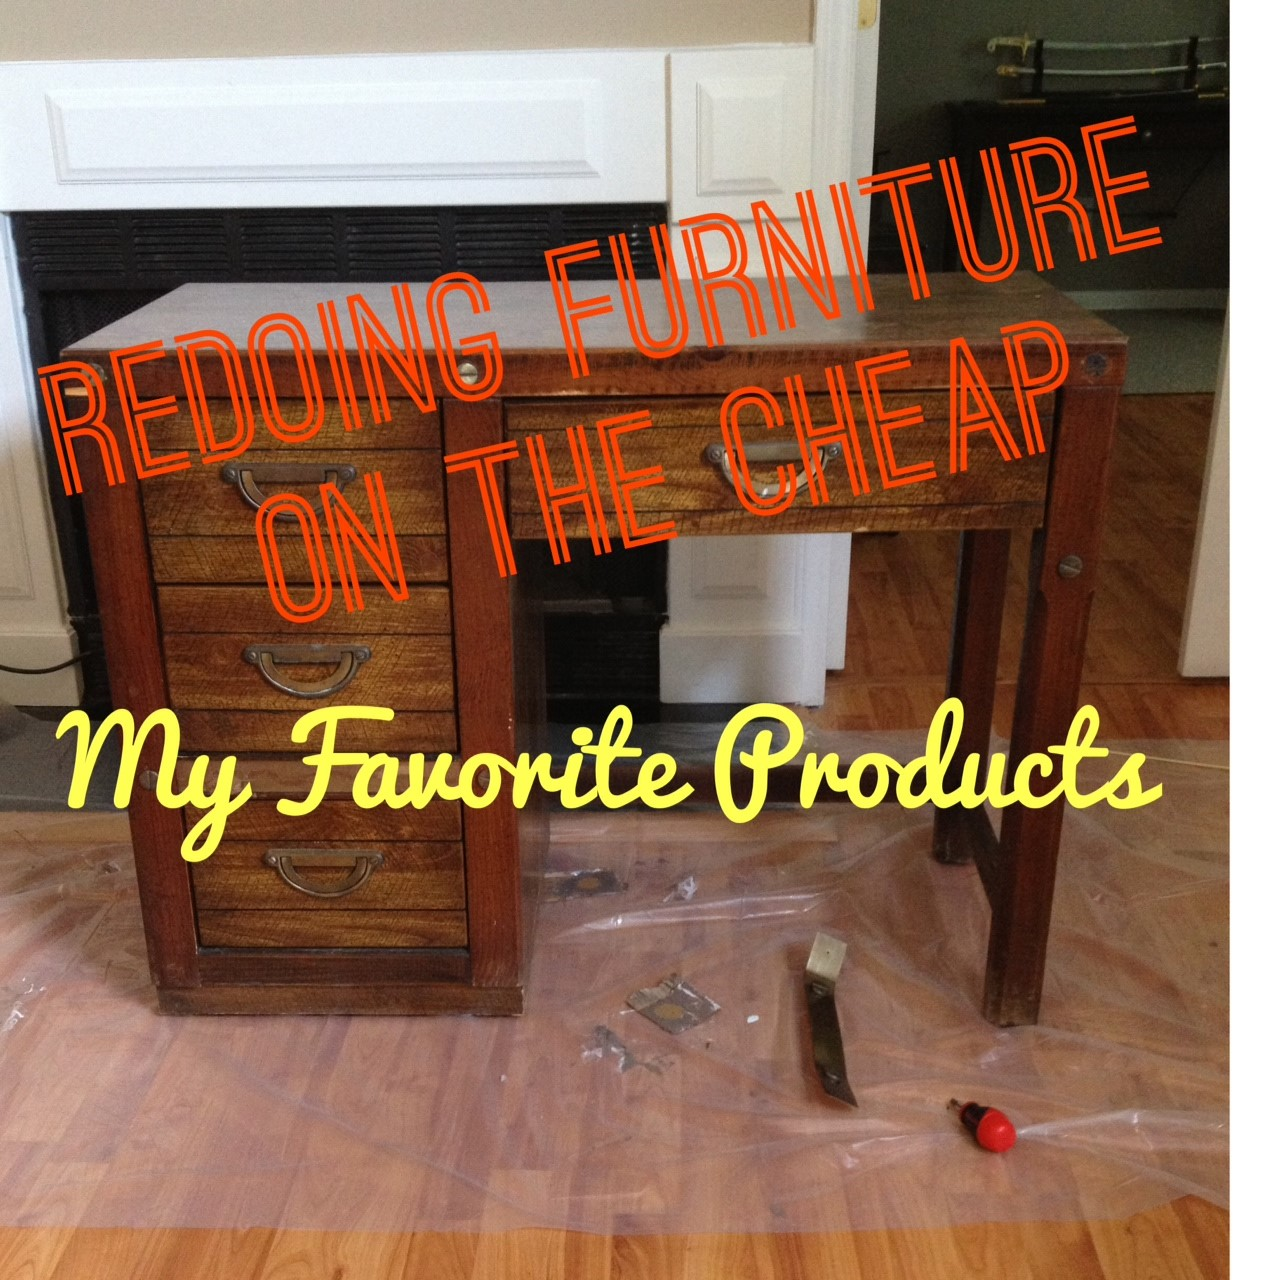 Http Simplyschulze Com 2014 04 08 Redoing Furniture On The Cheap My Favorite Products